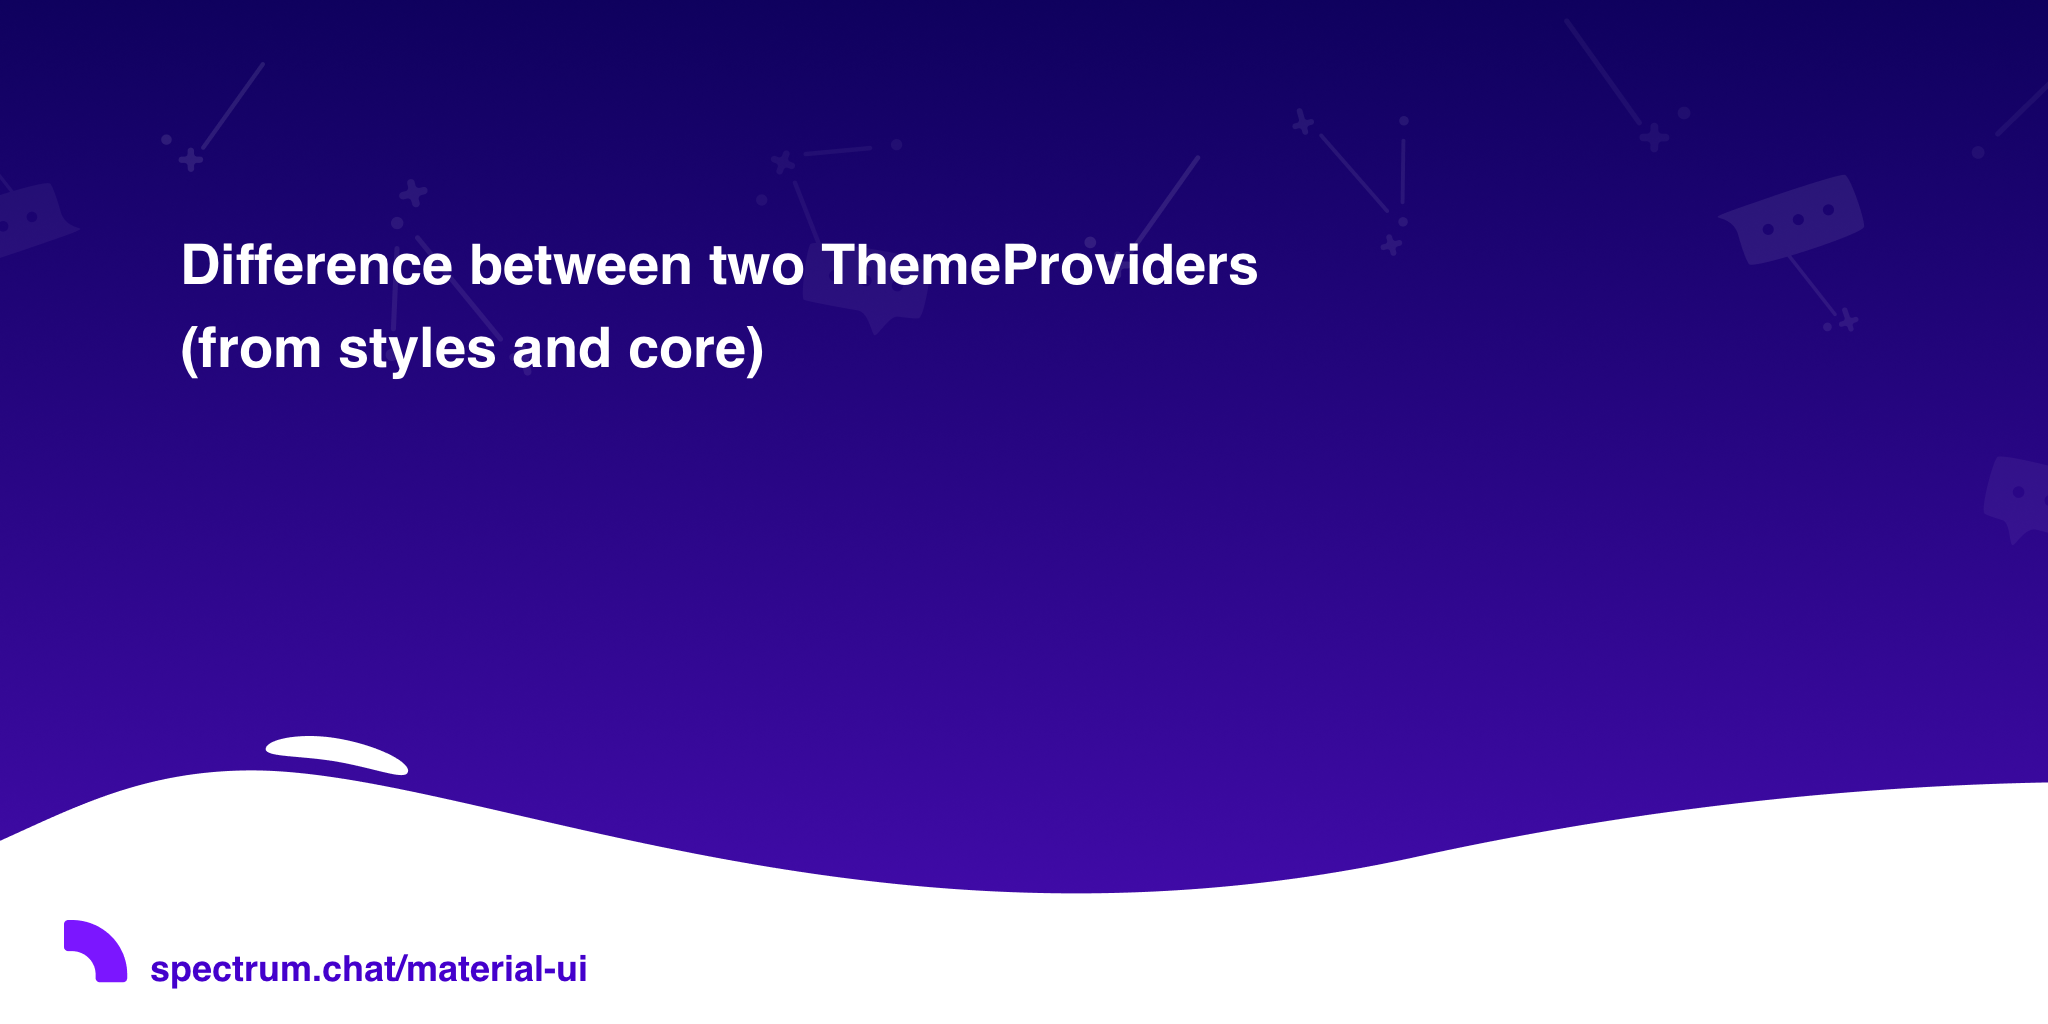 Difference between two ThemeProviders (from styles and core